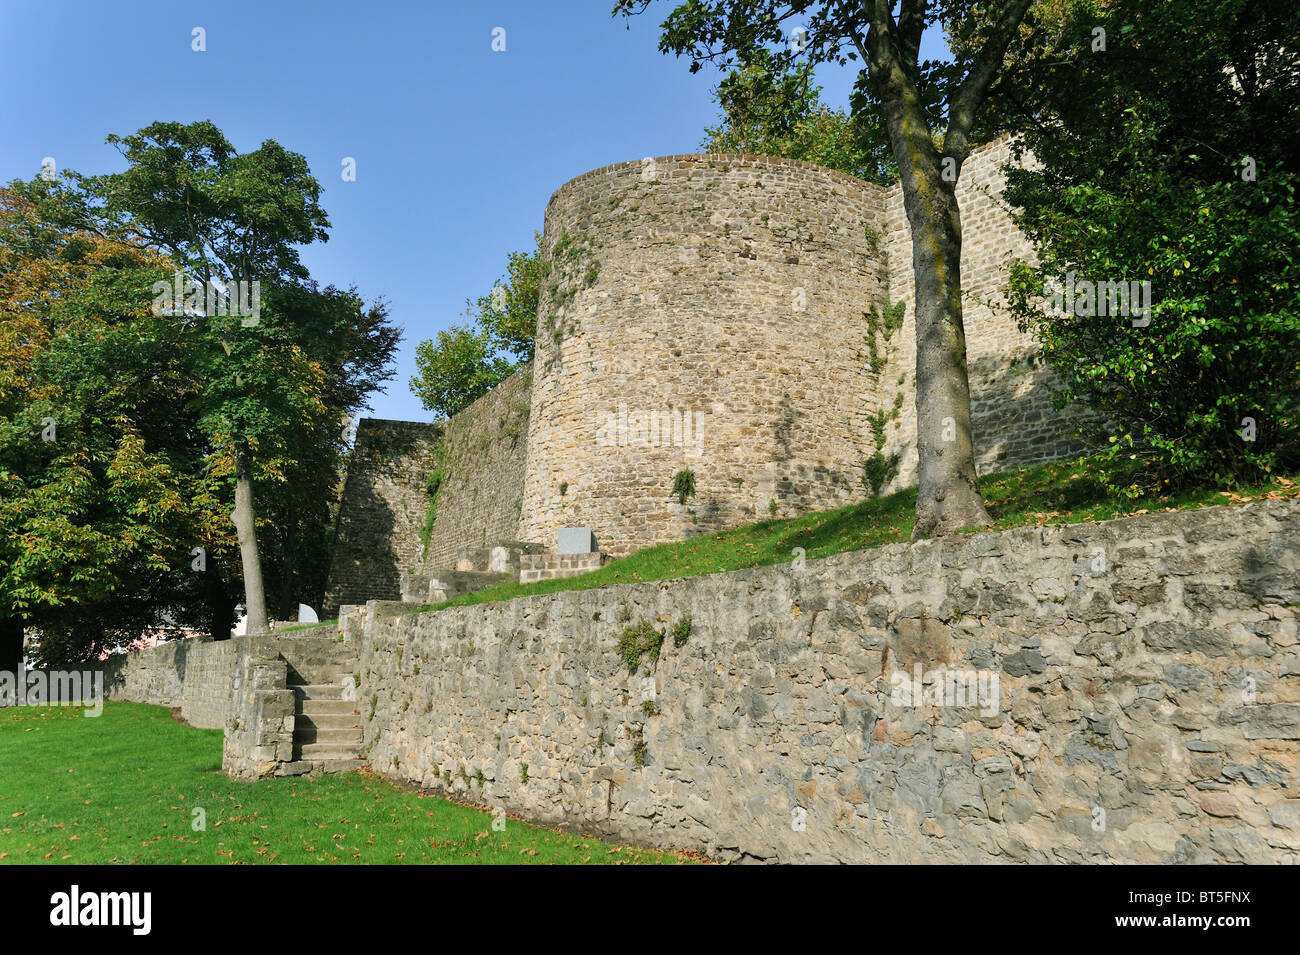 Rampart at Boulogne-sur-Mer, France - Stock Image